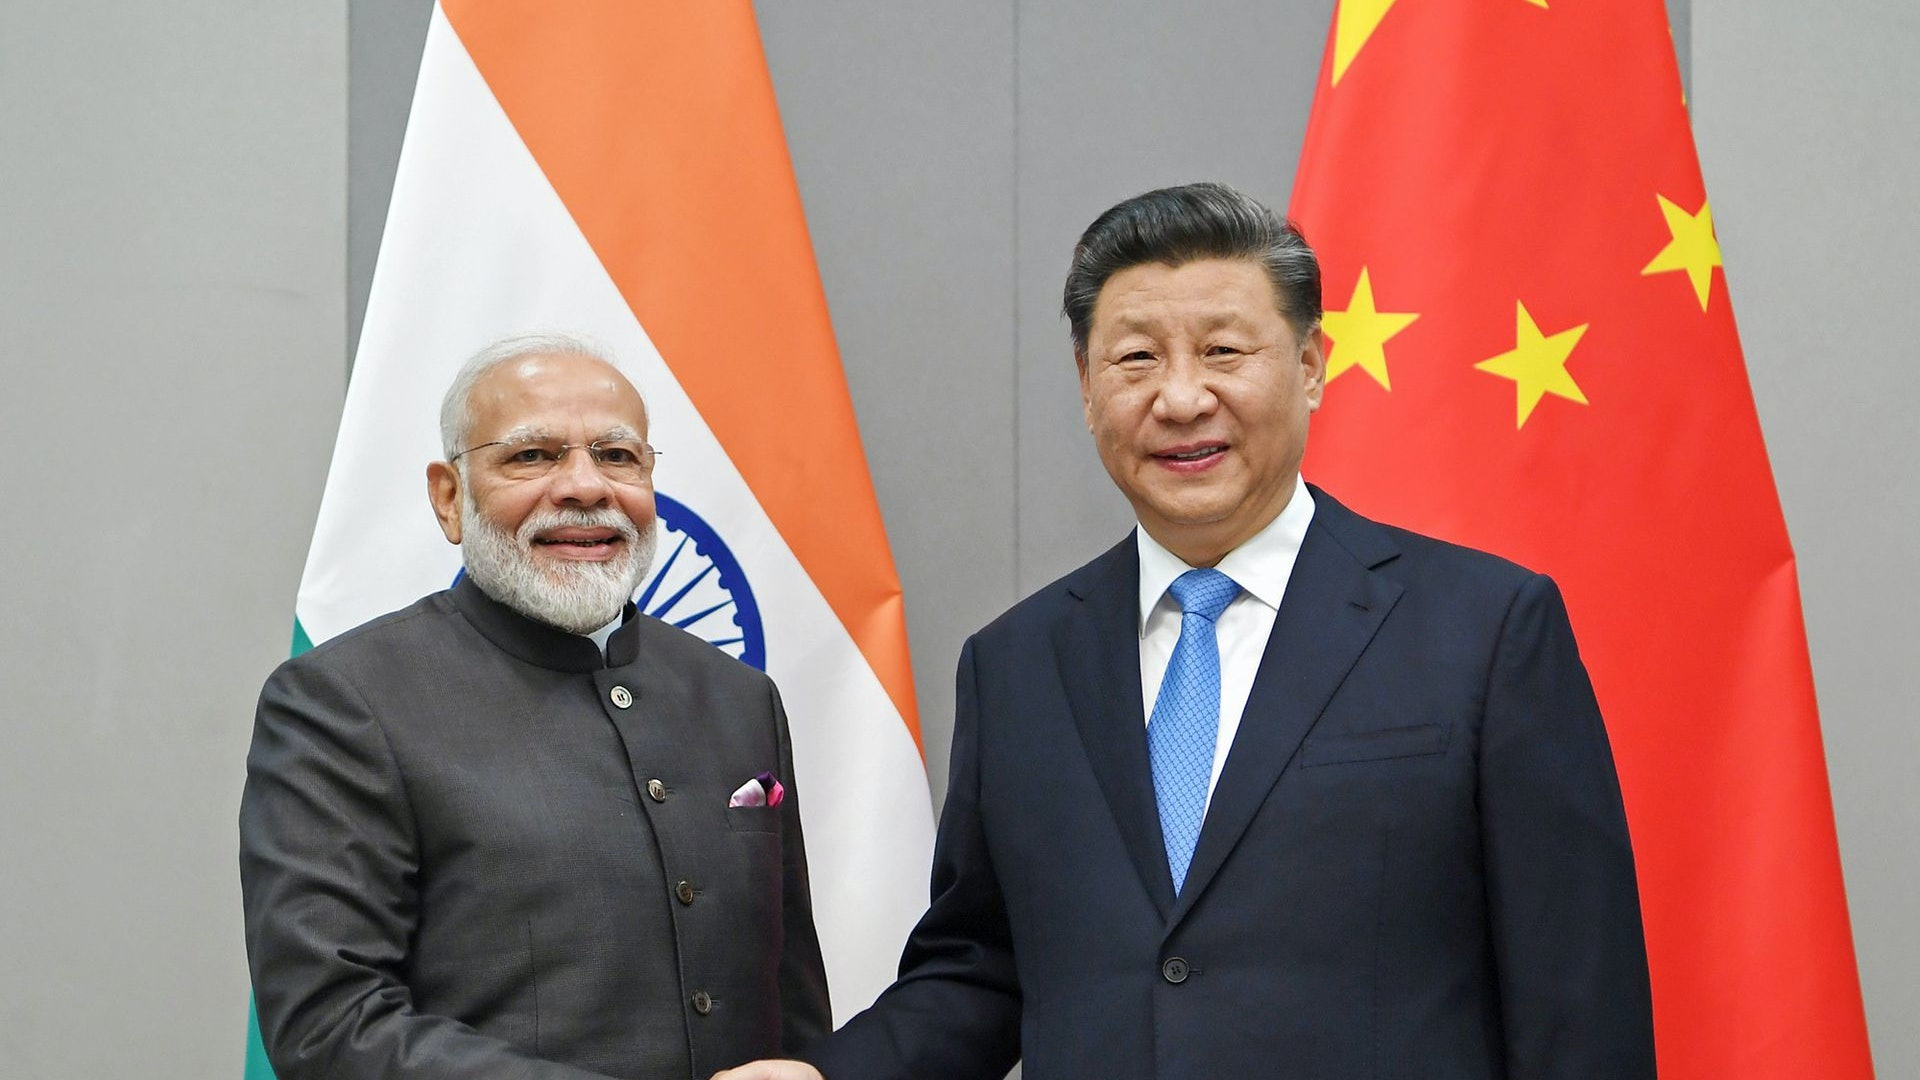 Australia-Xi Jinping sends a telegram of condolences to Modi: China is willing to help (photo) | Australia Chinatown